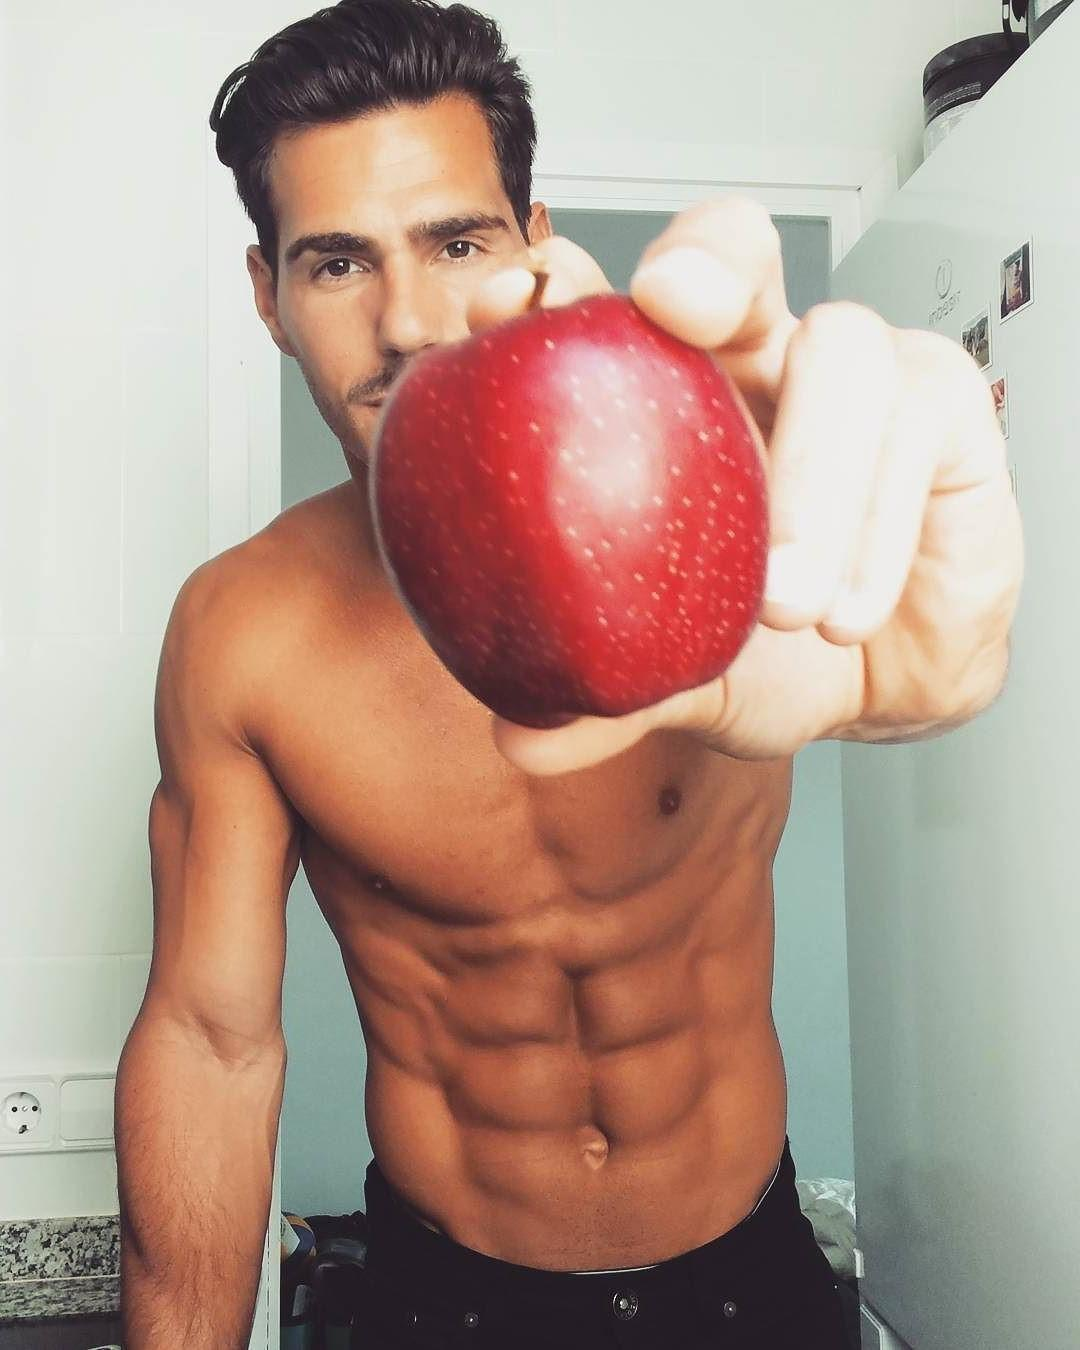 handsome-bare-chest-sixpack-abs-male-model-nice-hairstyle-red-apple